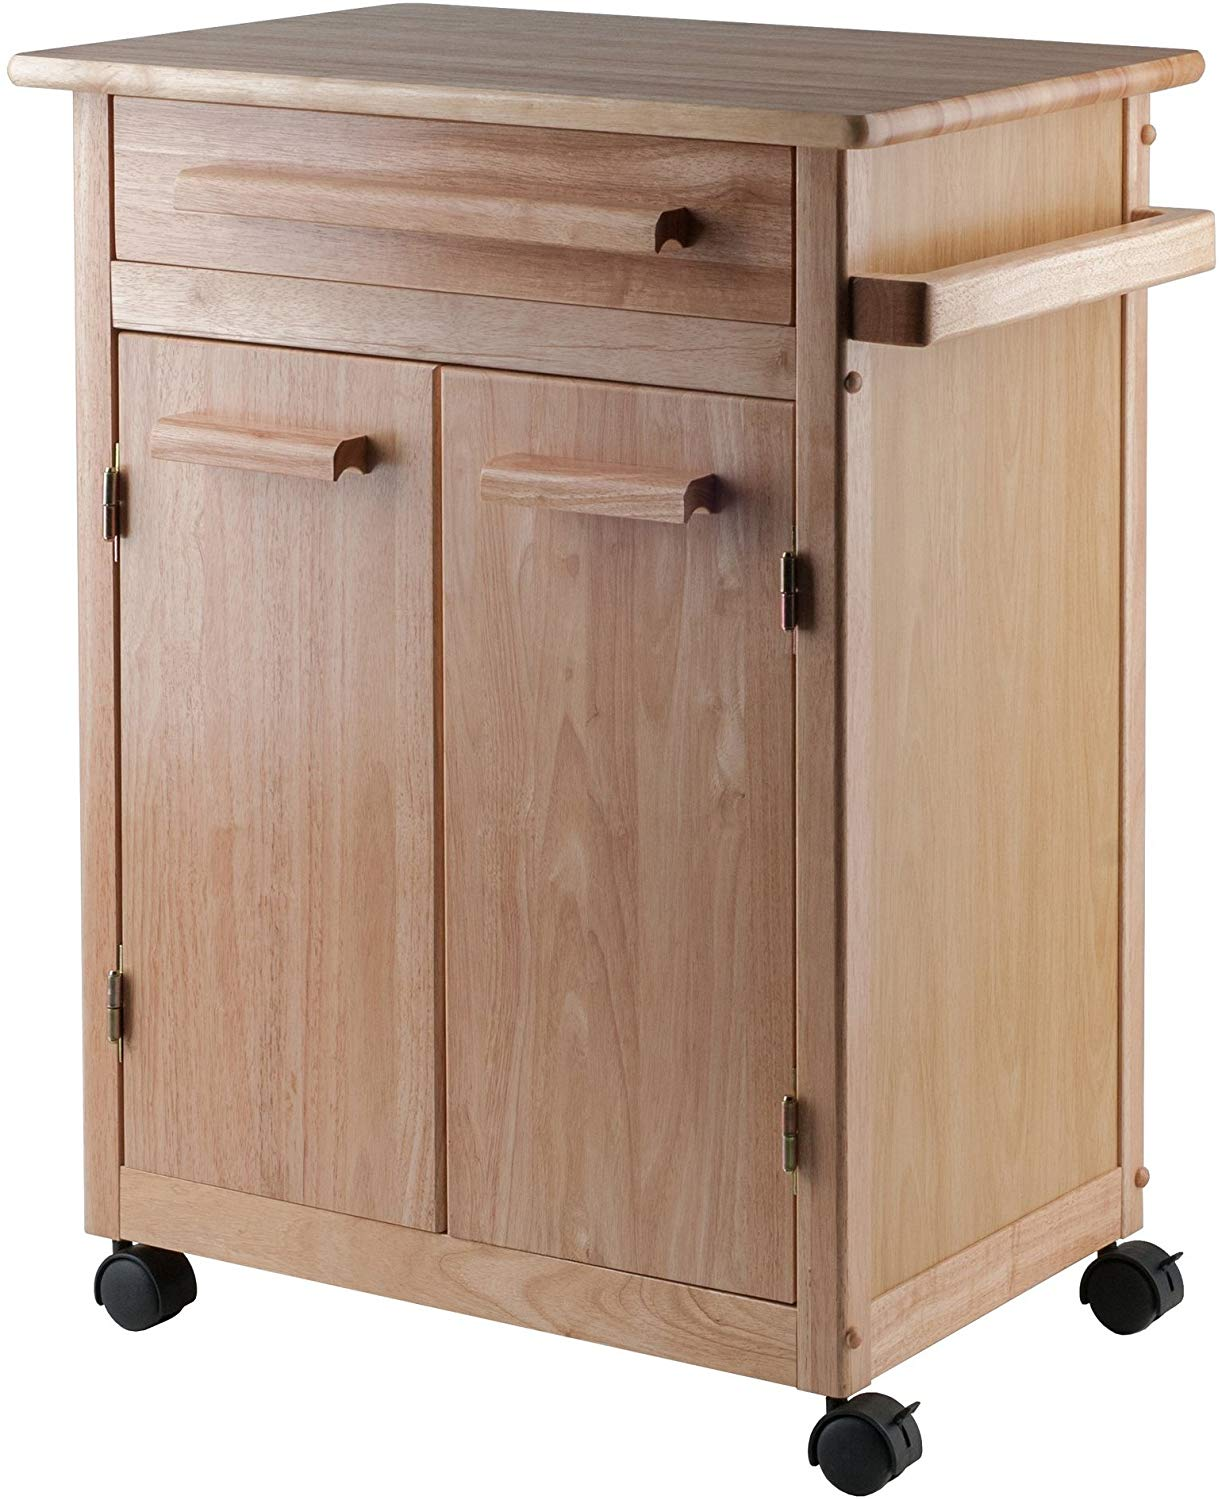 Winsome wood single drawer kitchen cabinet storage cart, natural